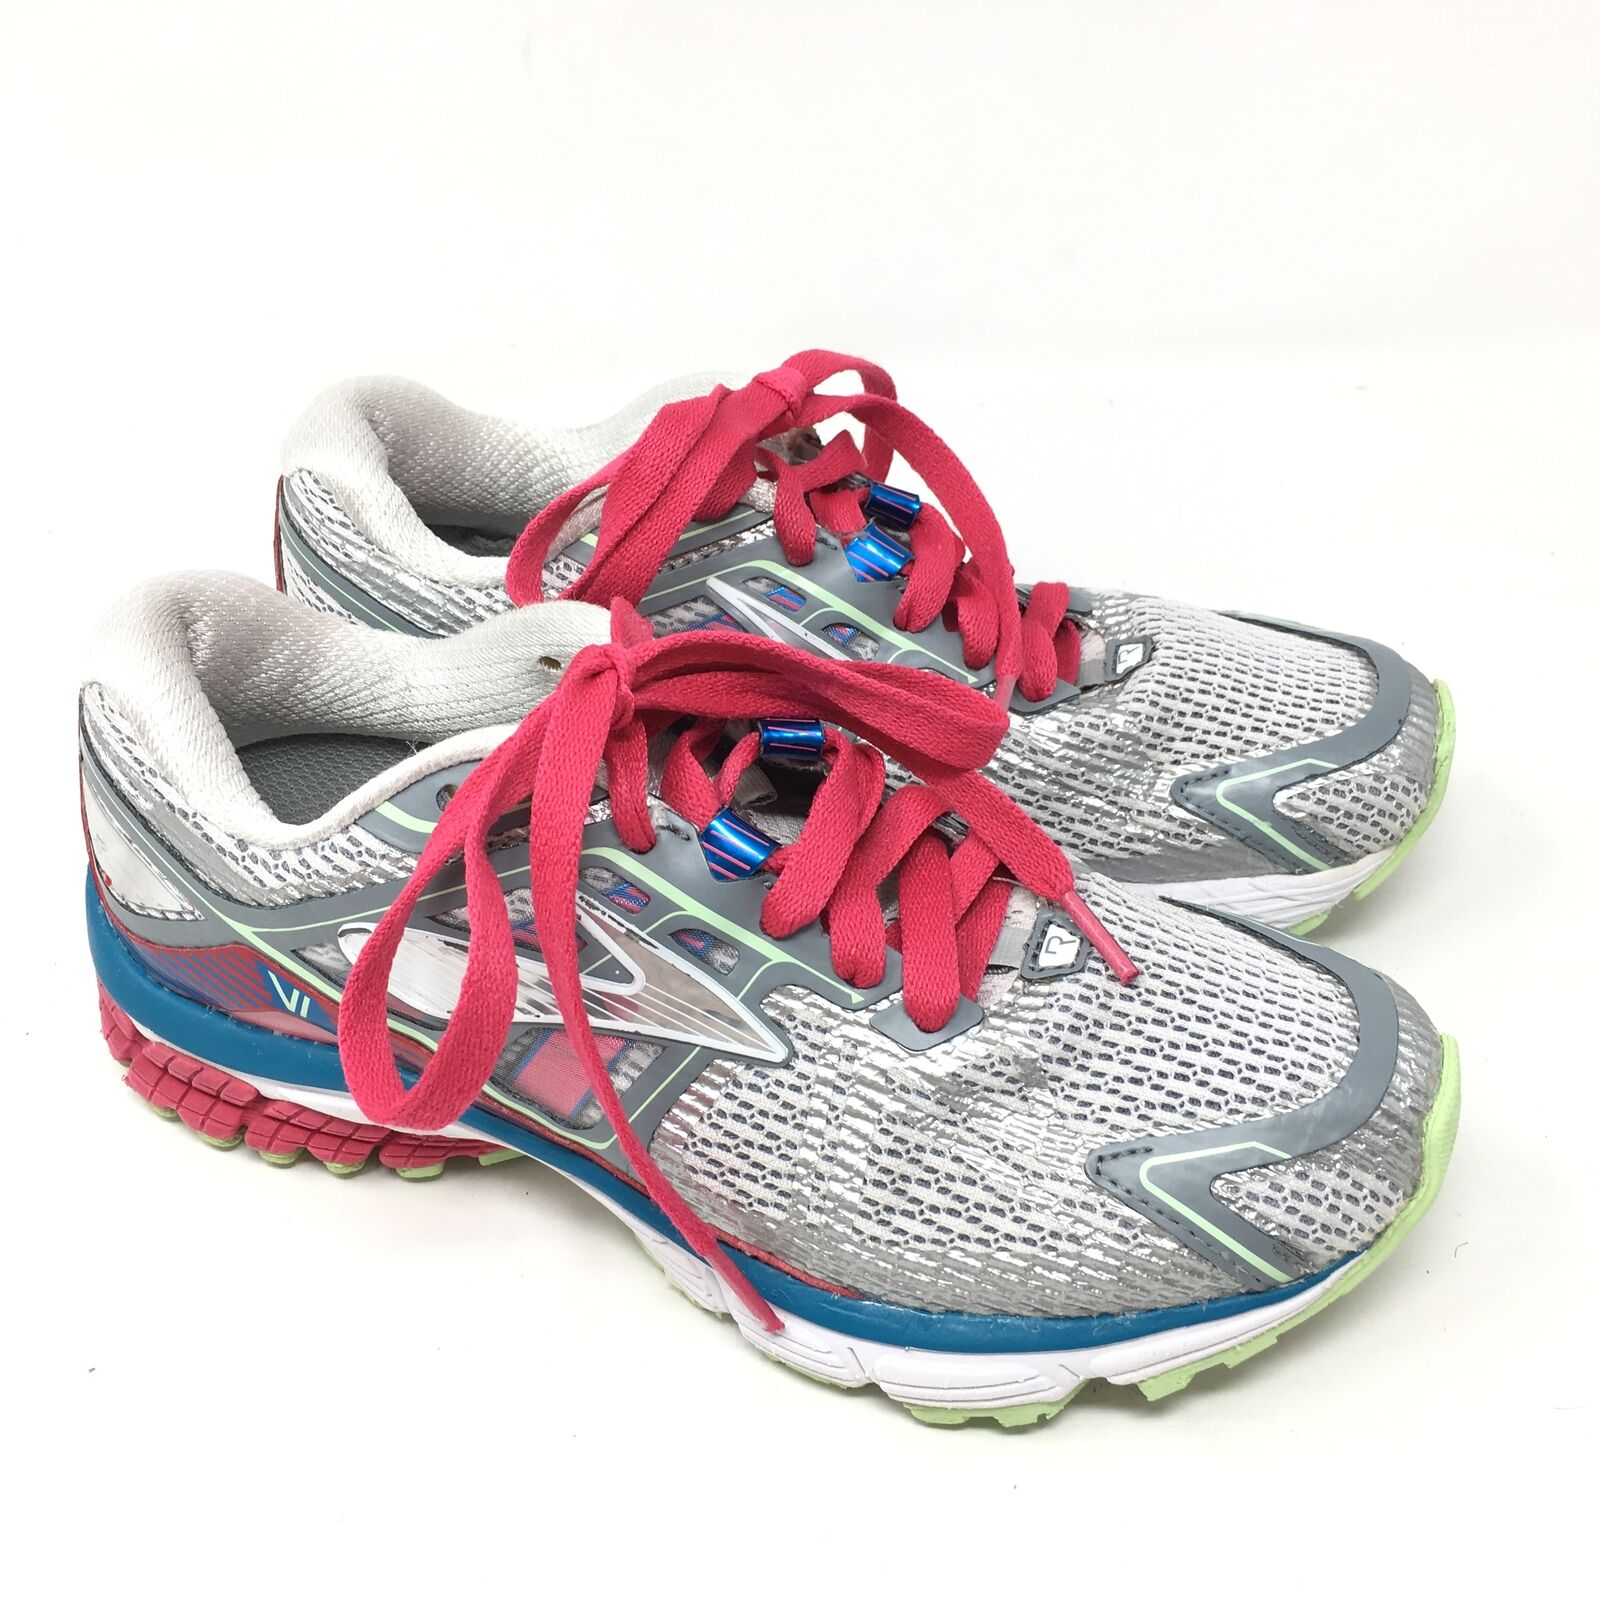 641c73d05cf UPC 762052733342 product image for Women s Brooks Ravenna 6 Running Shoe -  White raspberry Size ...